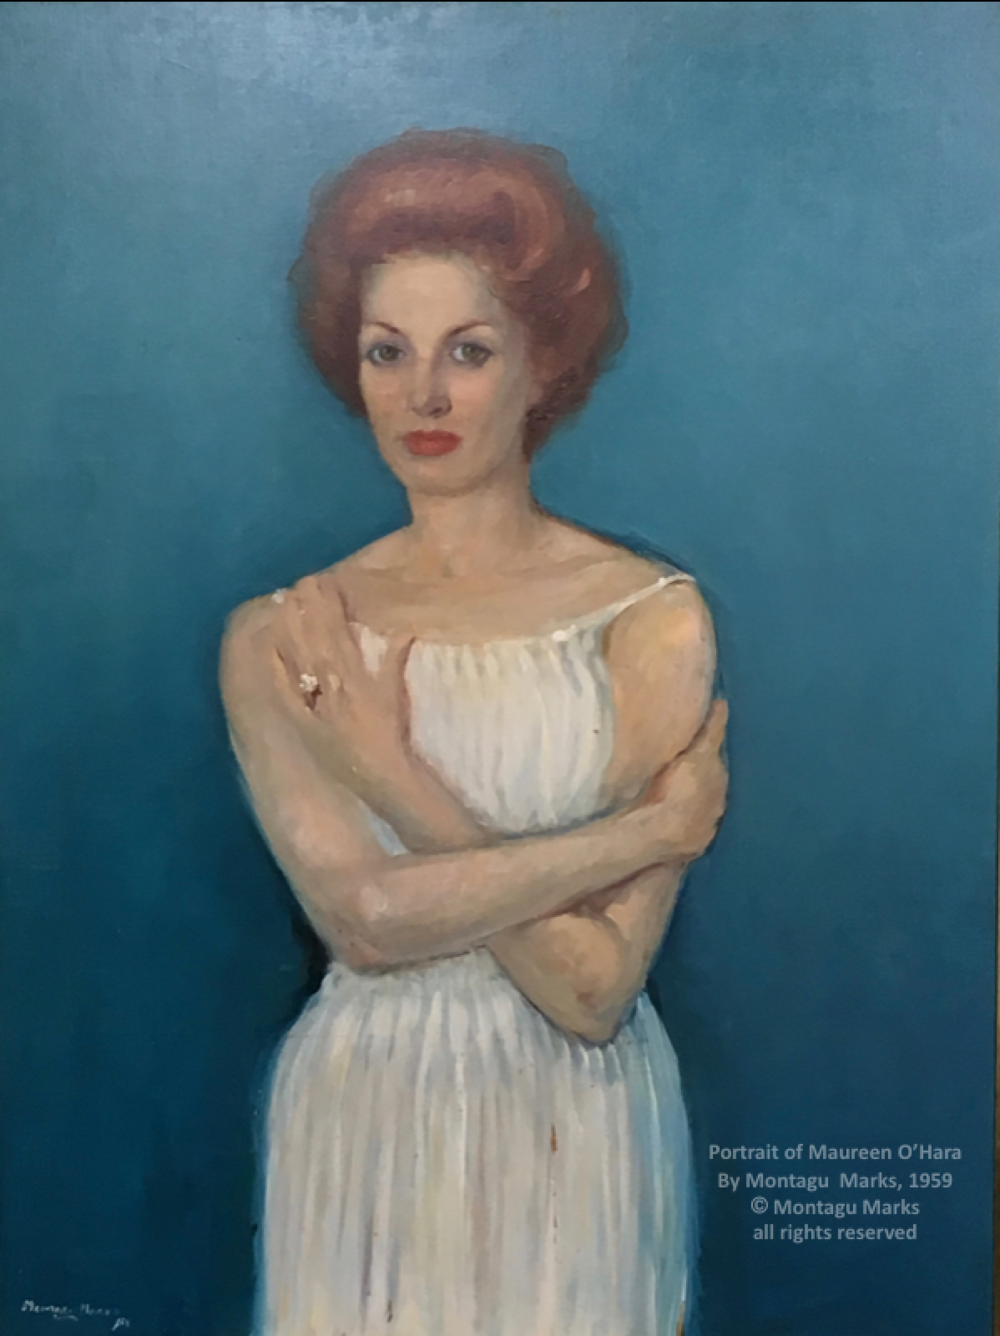 Portrait of Maureen O'Hara by Montagu Marks, 1959. Copyright Montagu Marks Estate all Rights Reserved.